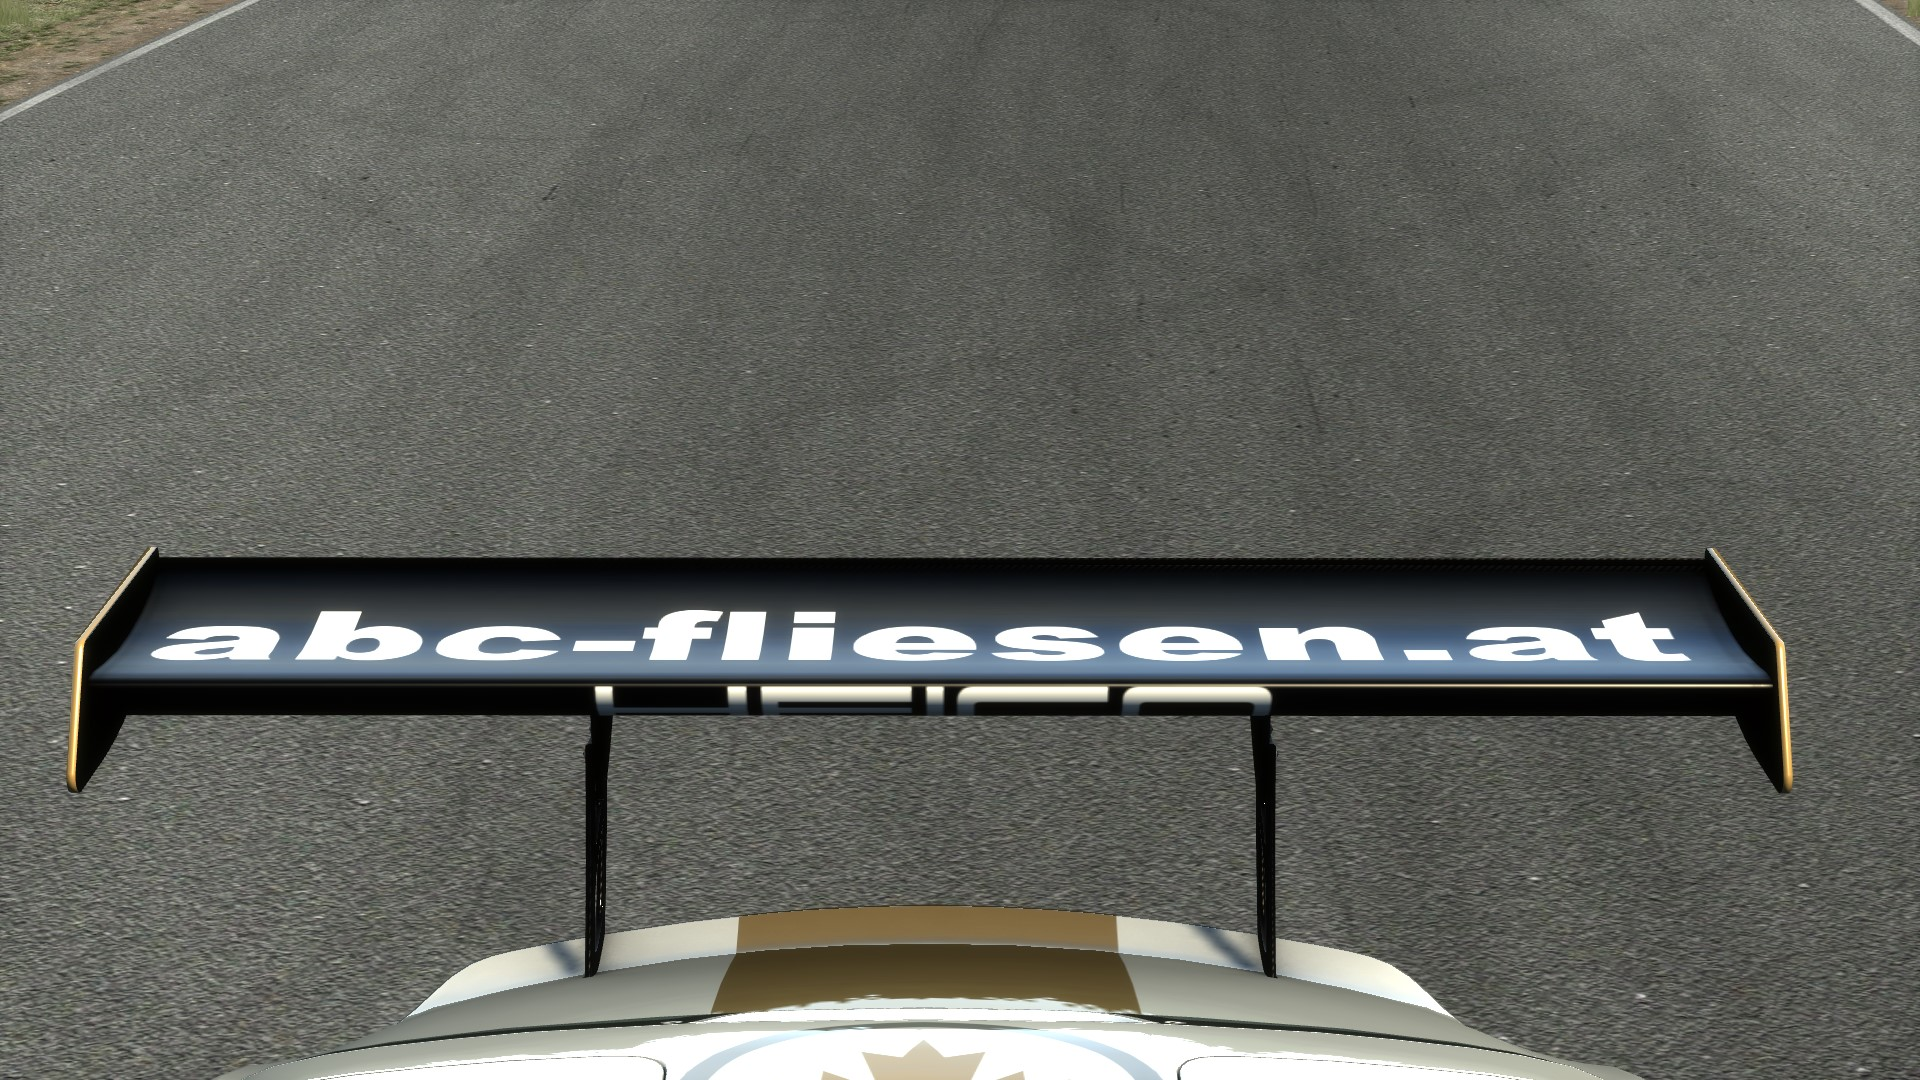 Screenshot_mercedes_sls_gt3_baskerville_beta_08_21-1-116-20-50-22.jpg